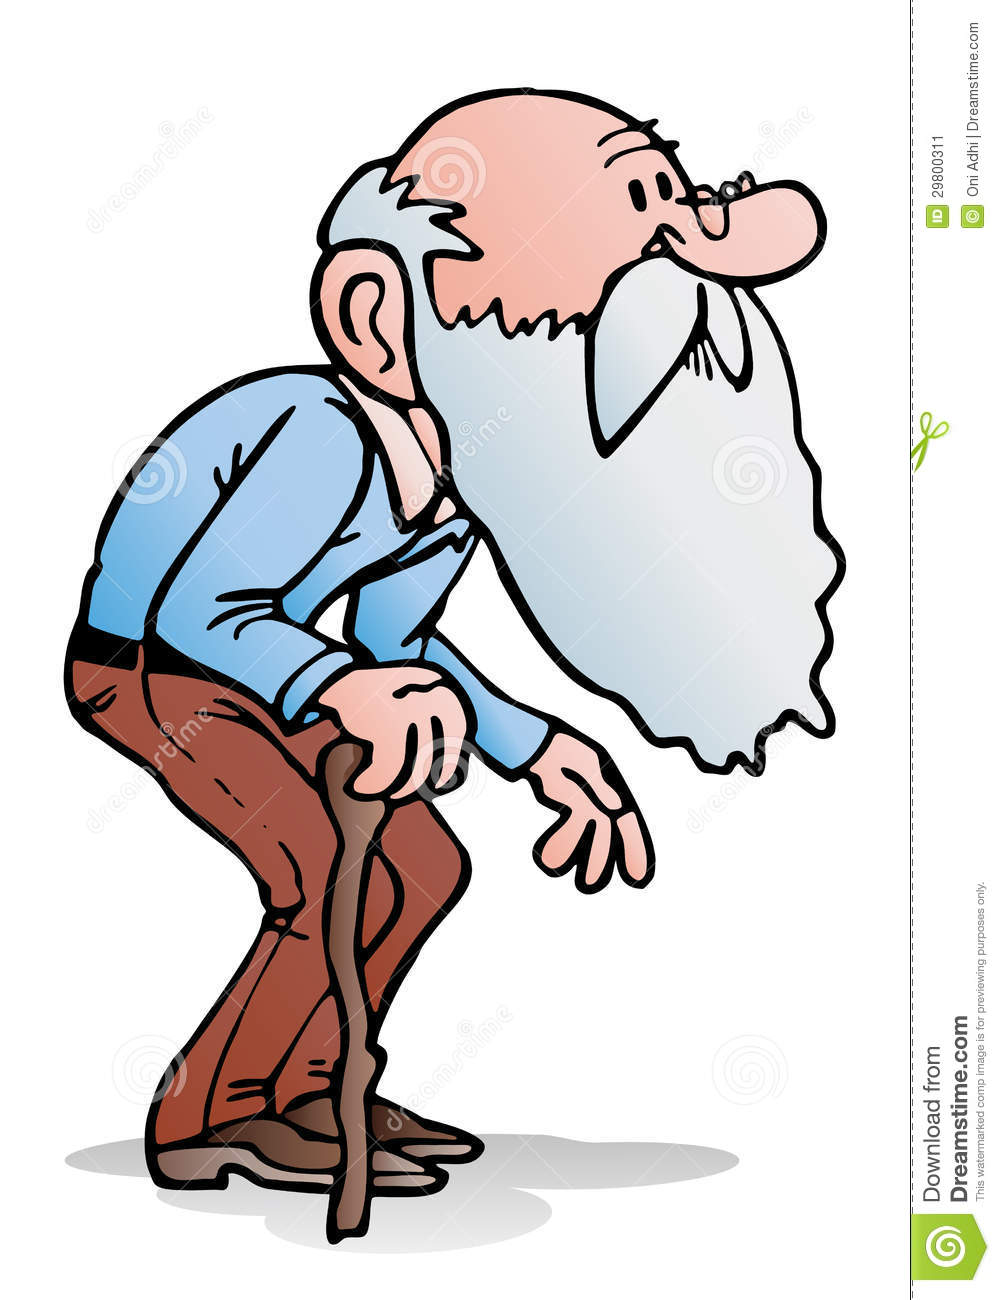 Old Man Clipart & Old Man Clip Art Images.